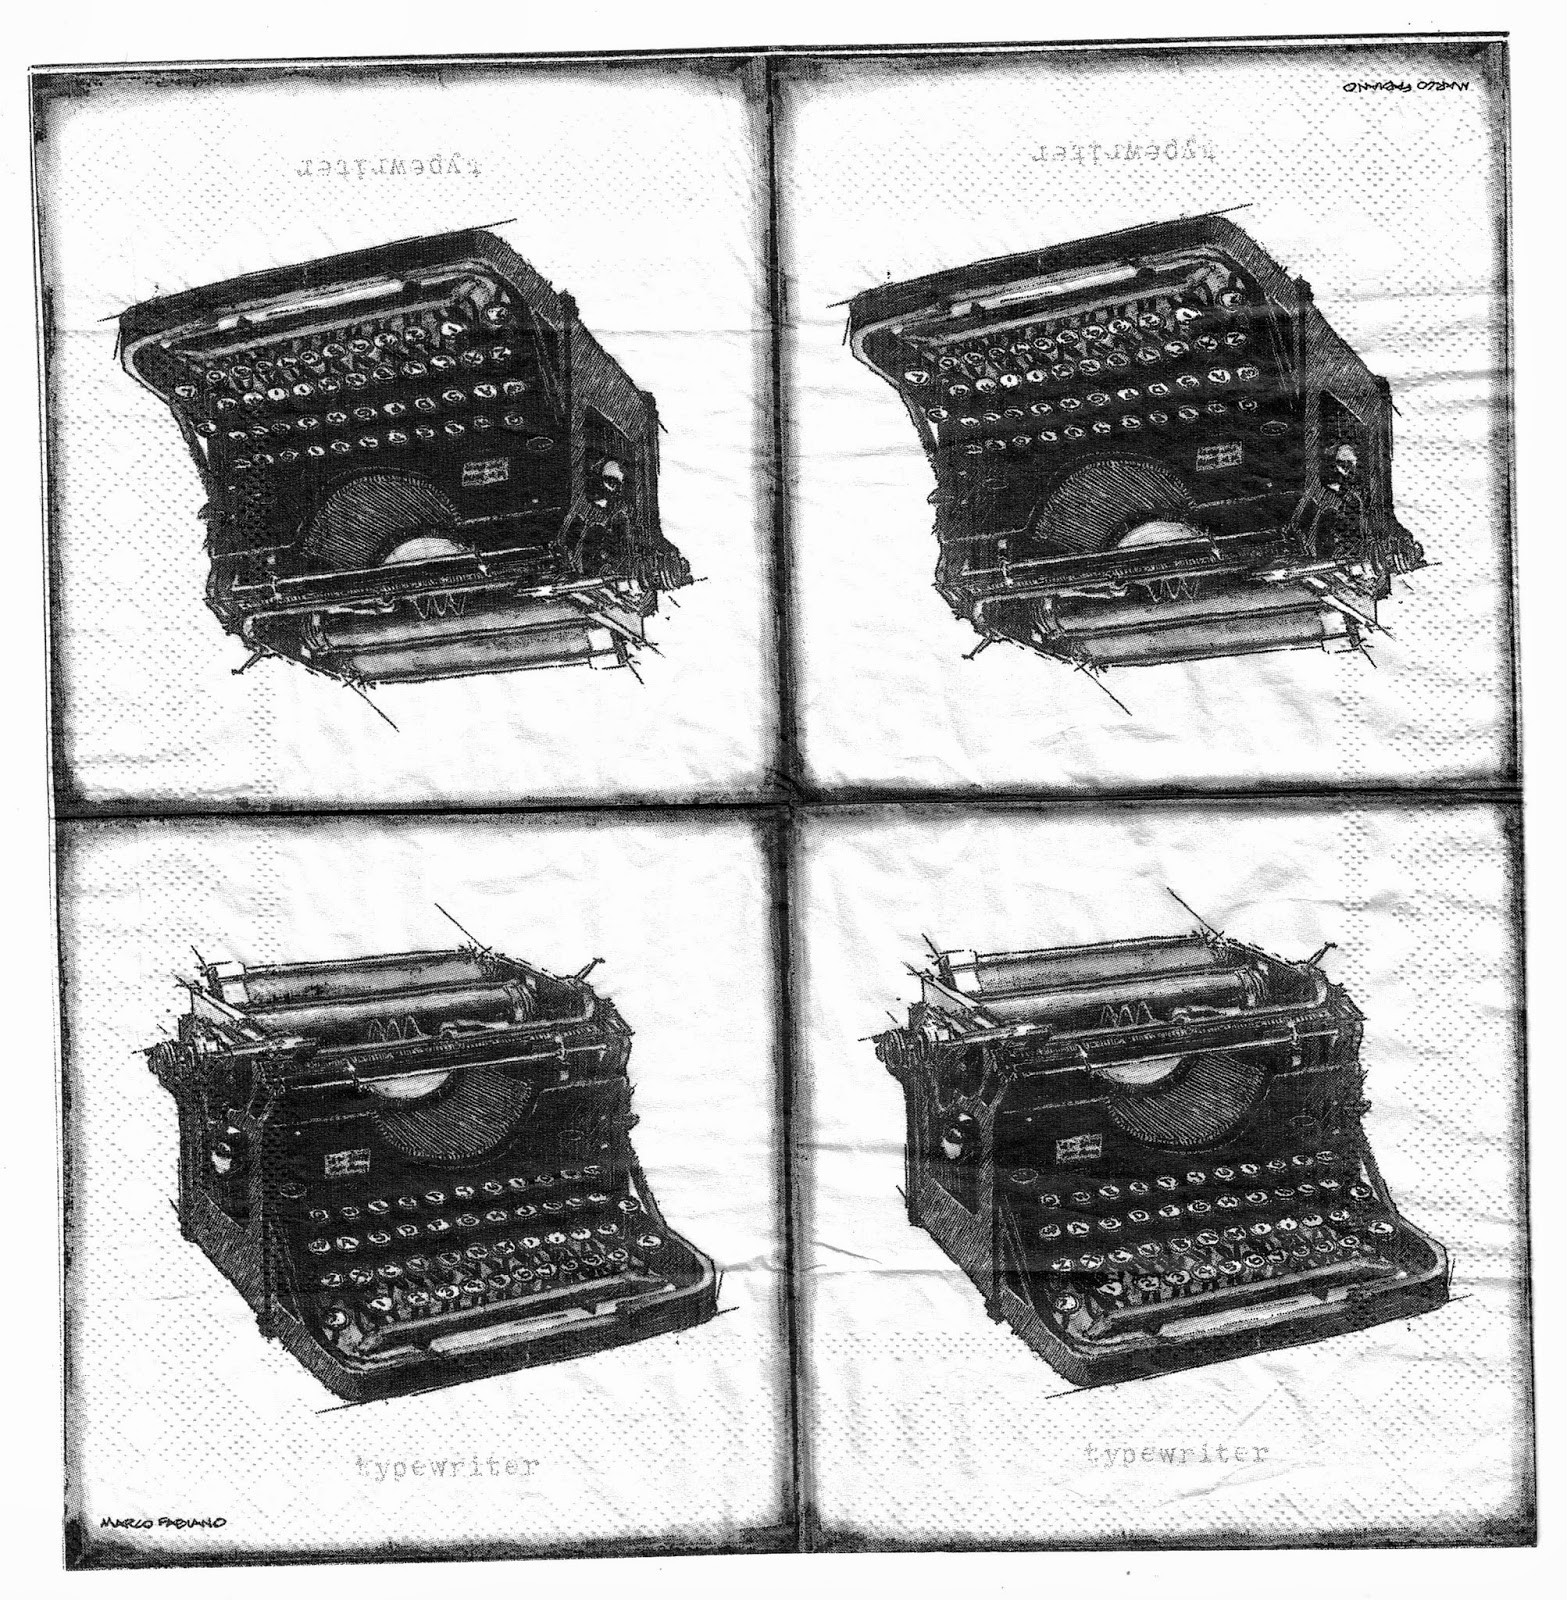 oz.Typewriter: Odyssey to Ohio: The Greatest Typewriter